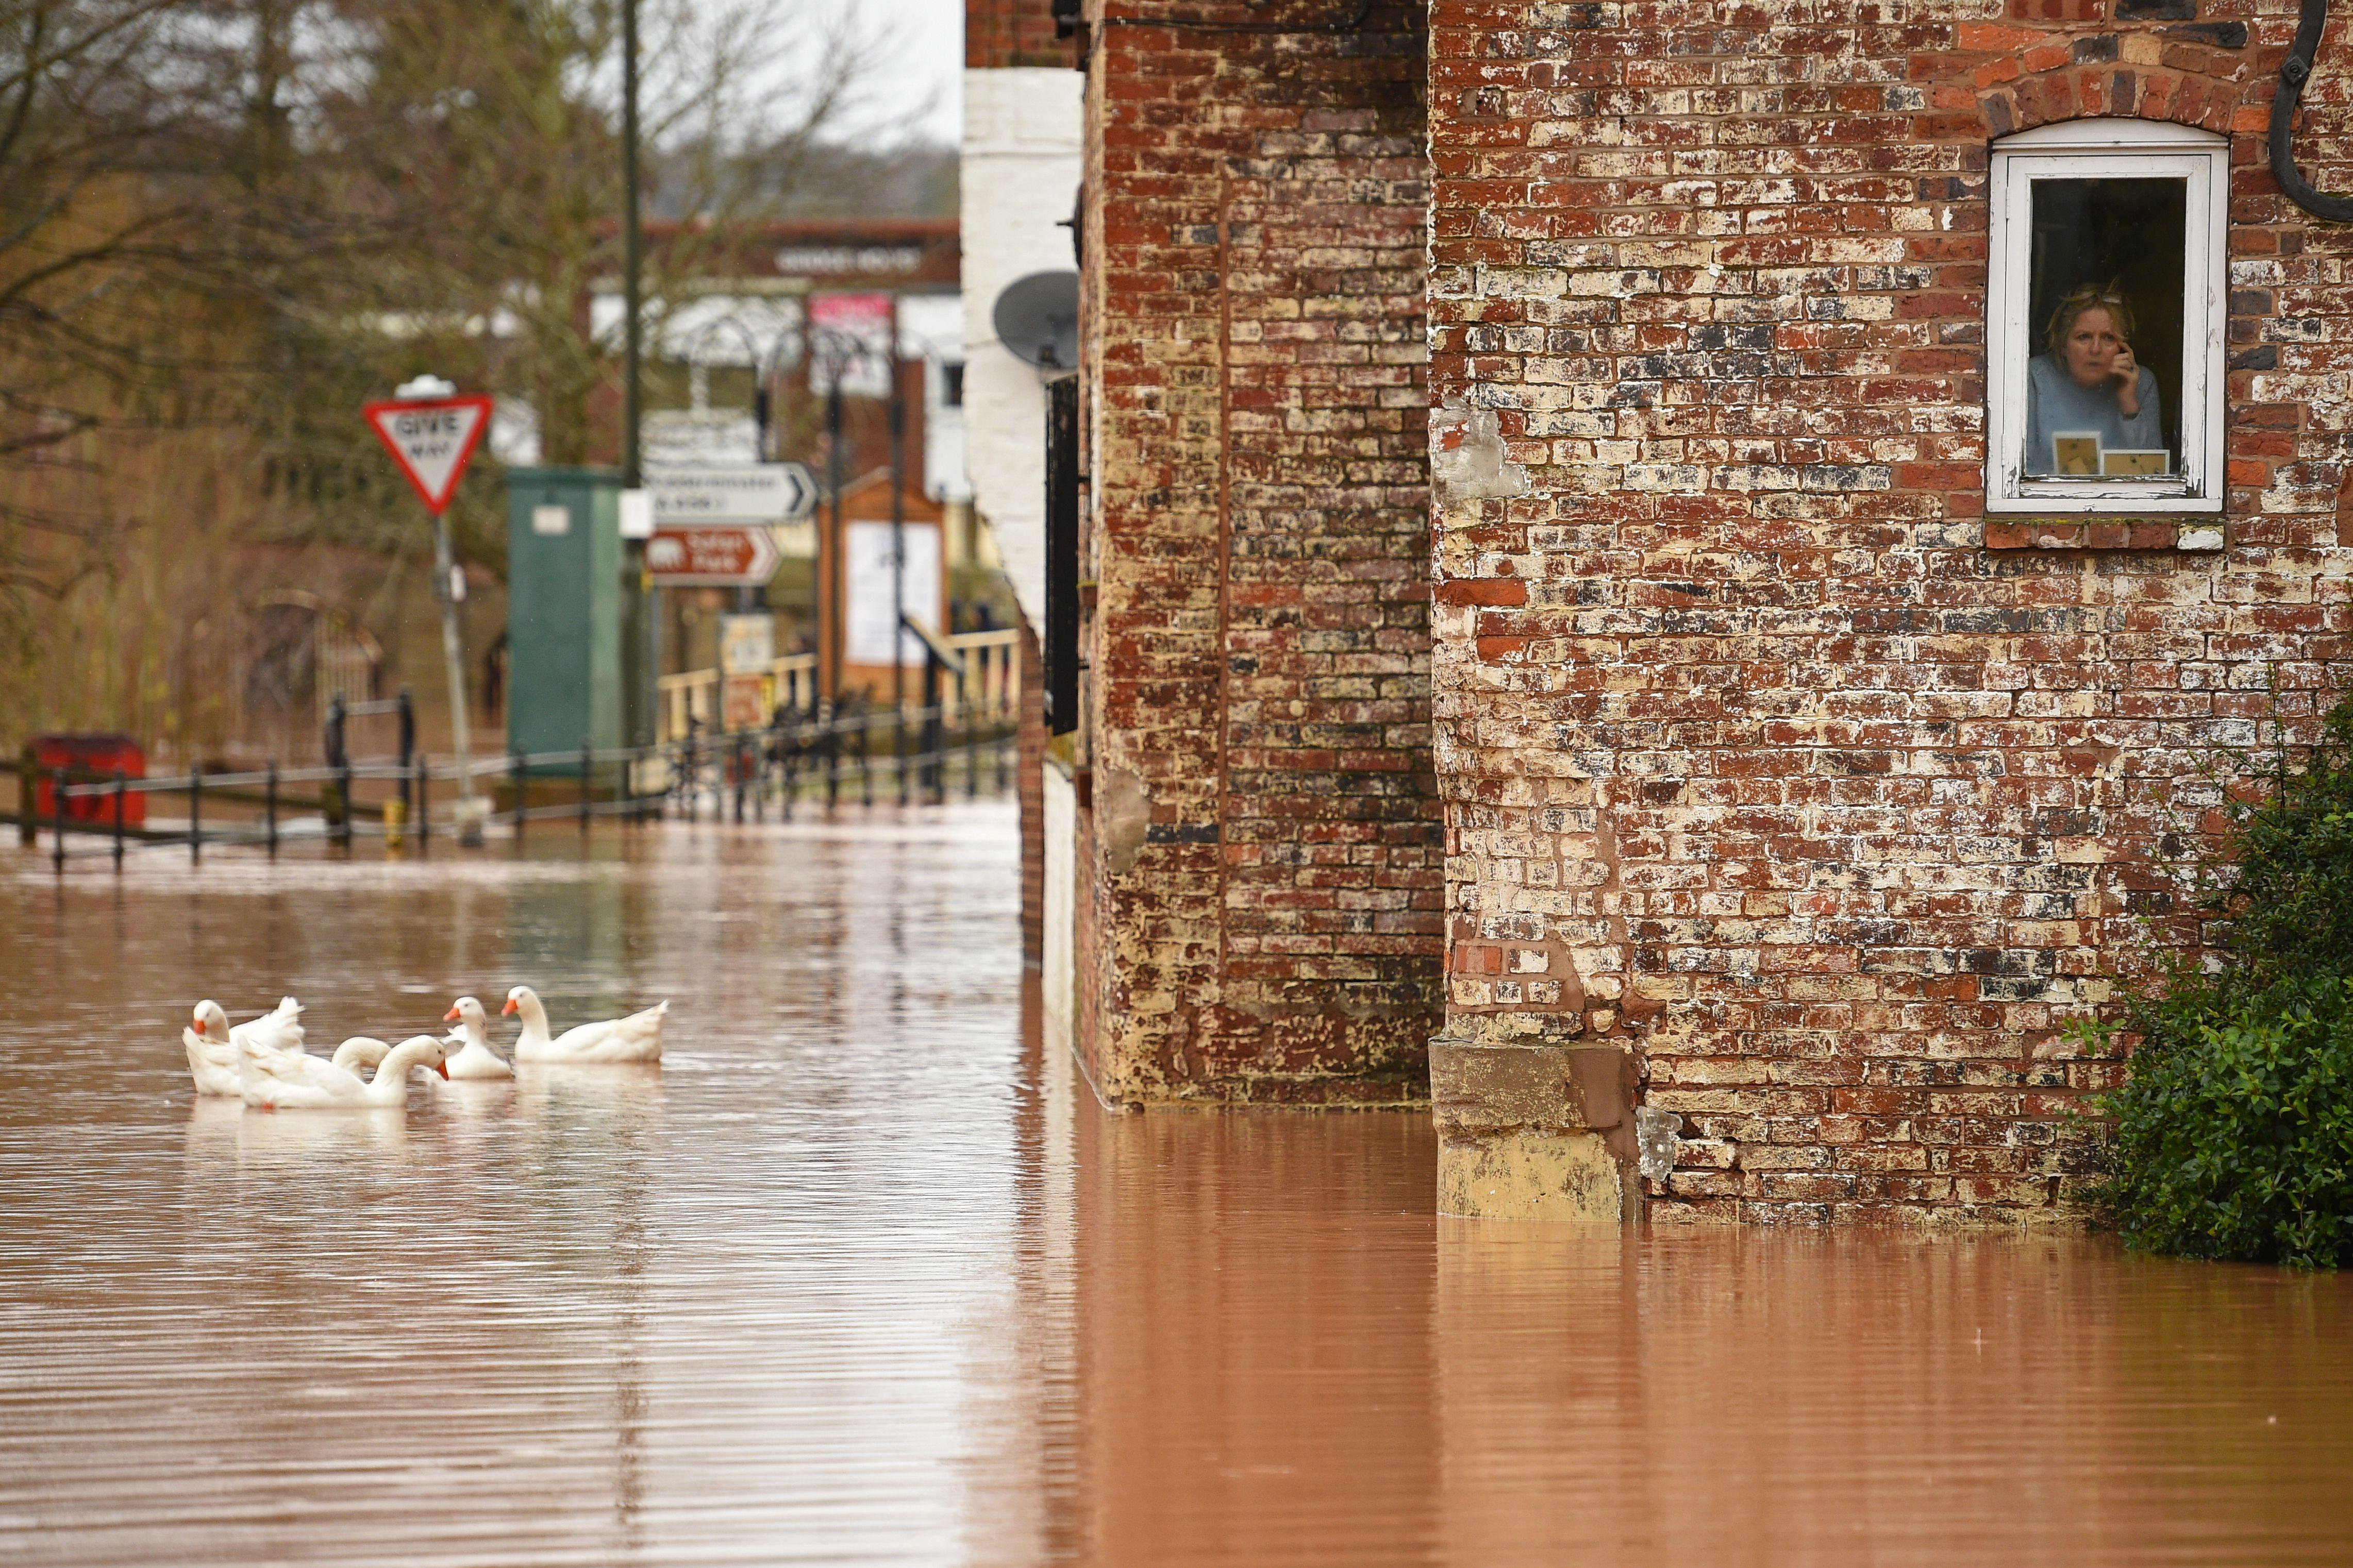 """TOPSHOT - A woman looks out of her window as geese swim past in floodwater after the River Severn bursts it's banks in Bewdley, west of Birmingham on February 16, 2020, after Storm Dennis caused flooding across large swathes of Britain. - As Storm Dennis sweeps in, the country is bracing itself for widespread weather disruption for the second weekend in a row. Experts have warned that conditions amount to a """"perfect storm"""", with hundreds of homes at risk of flooding. (Photo by Oli SCARFF / AFP) (Photo by OLI SCARFF/AFP via Getty Images)"""